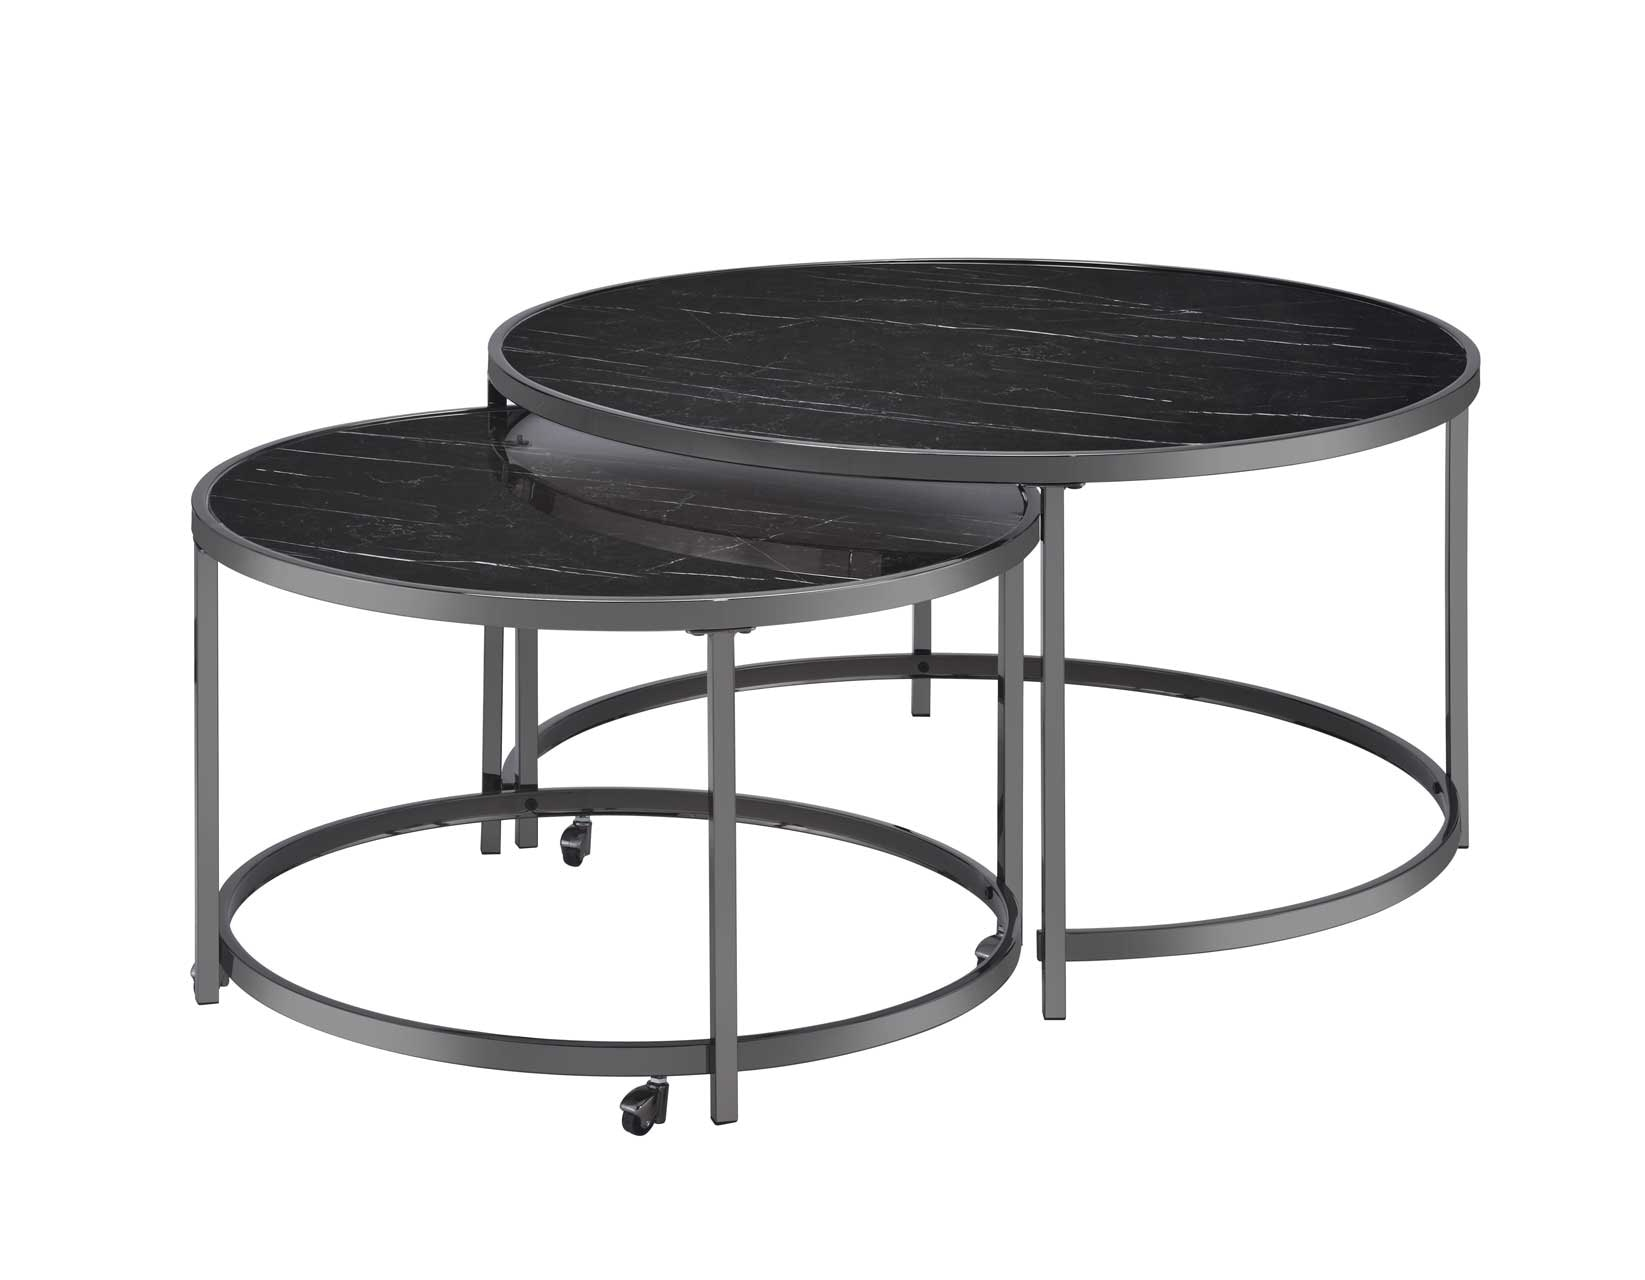 Steve Silver Rayne Nesting Cocktail Table Black Ry300ncb In Elyria Olmsted Kaplan S Furniture